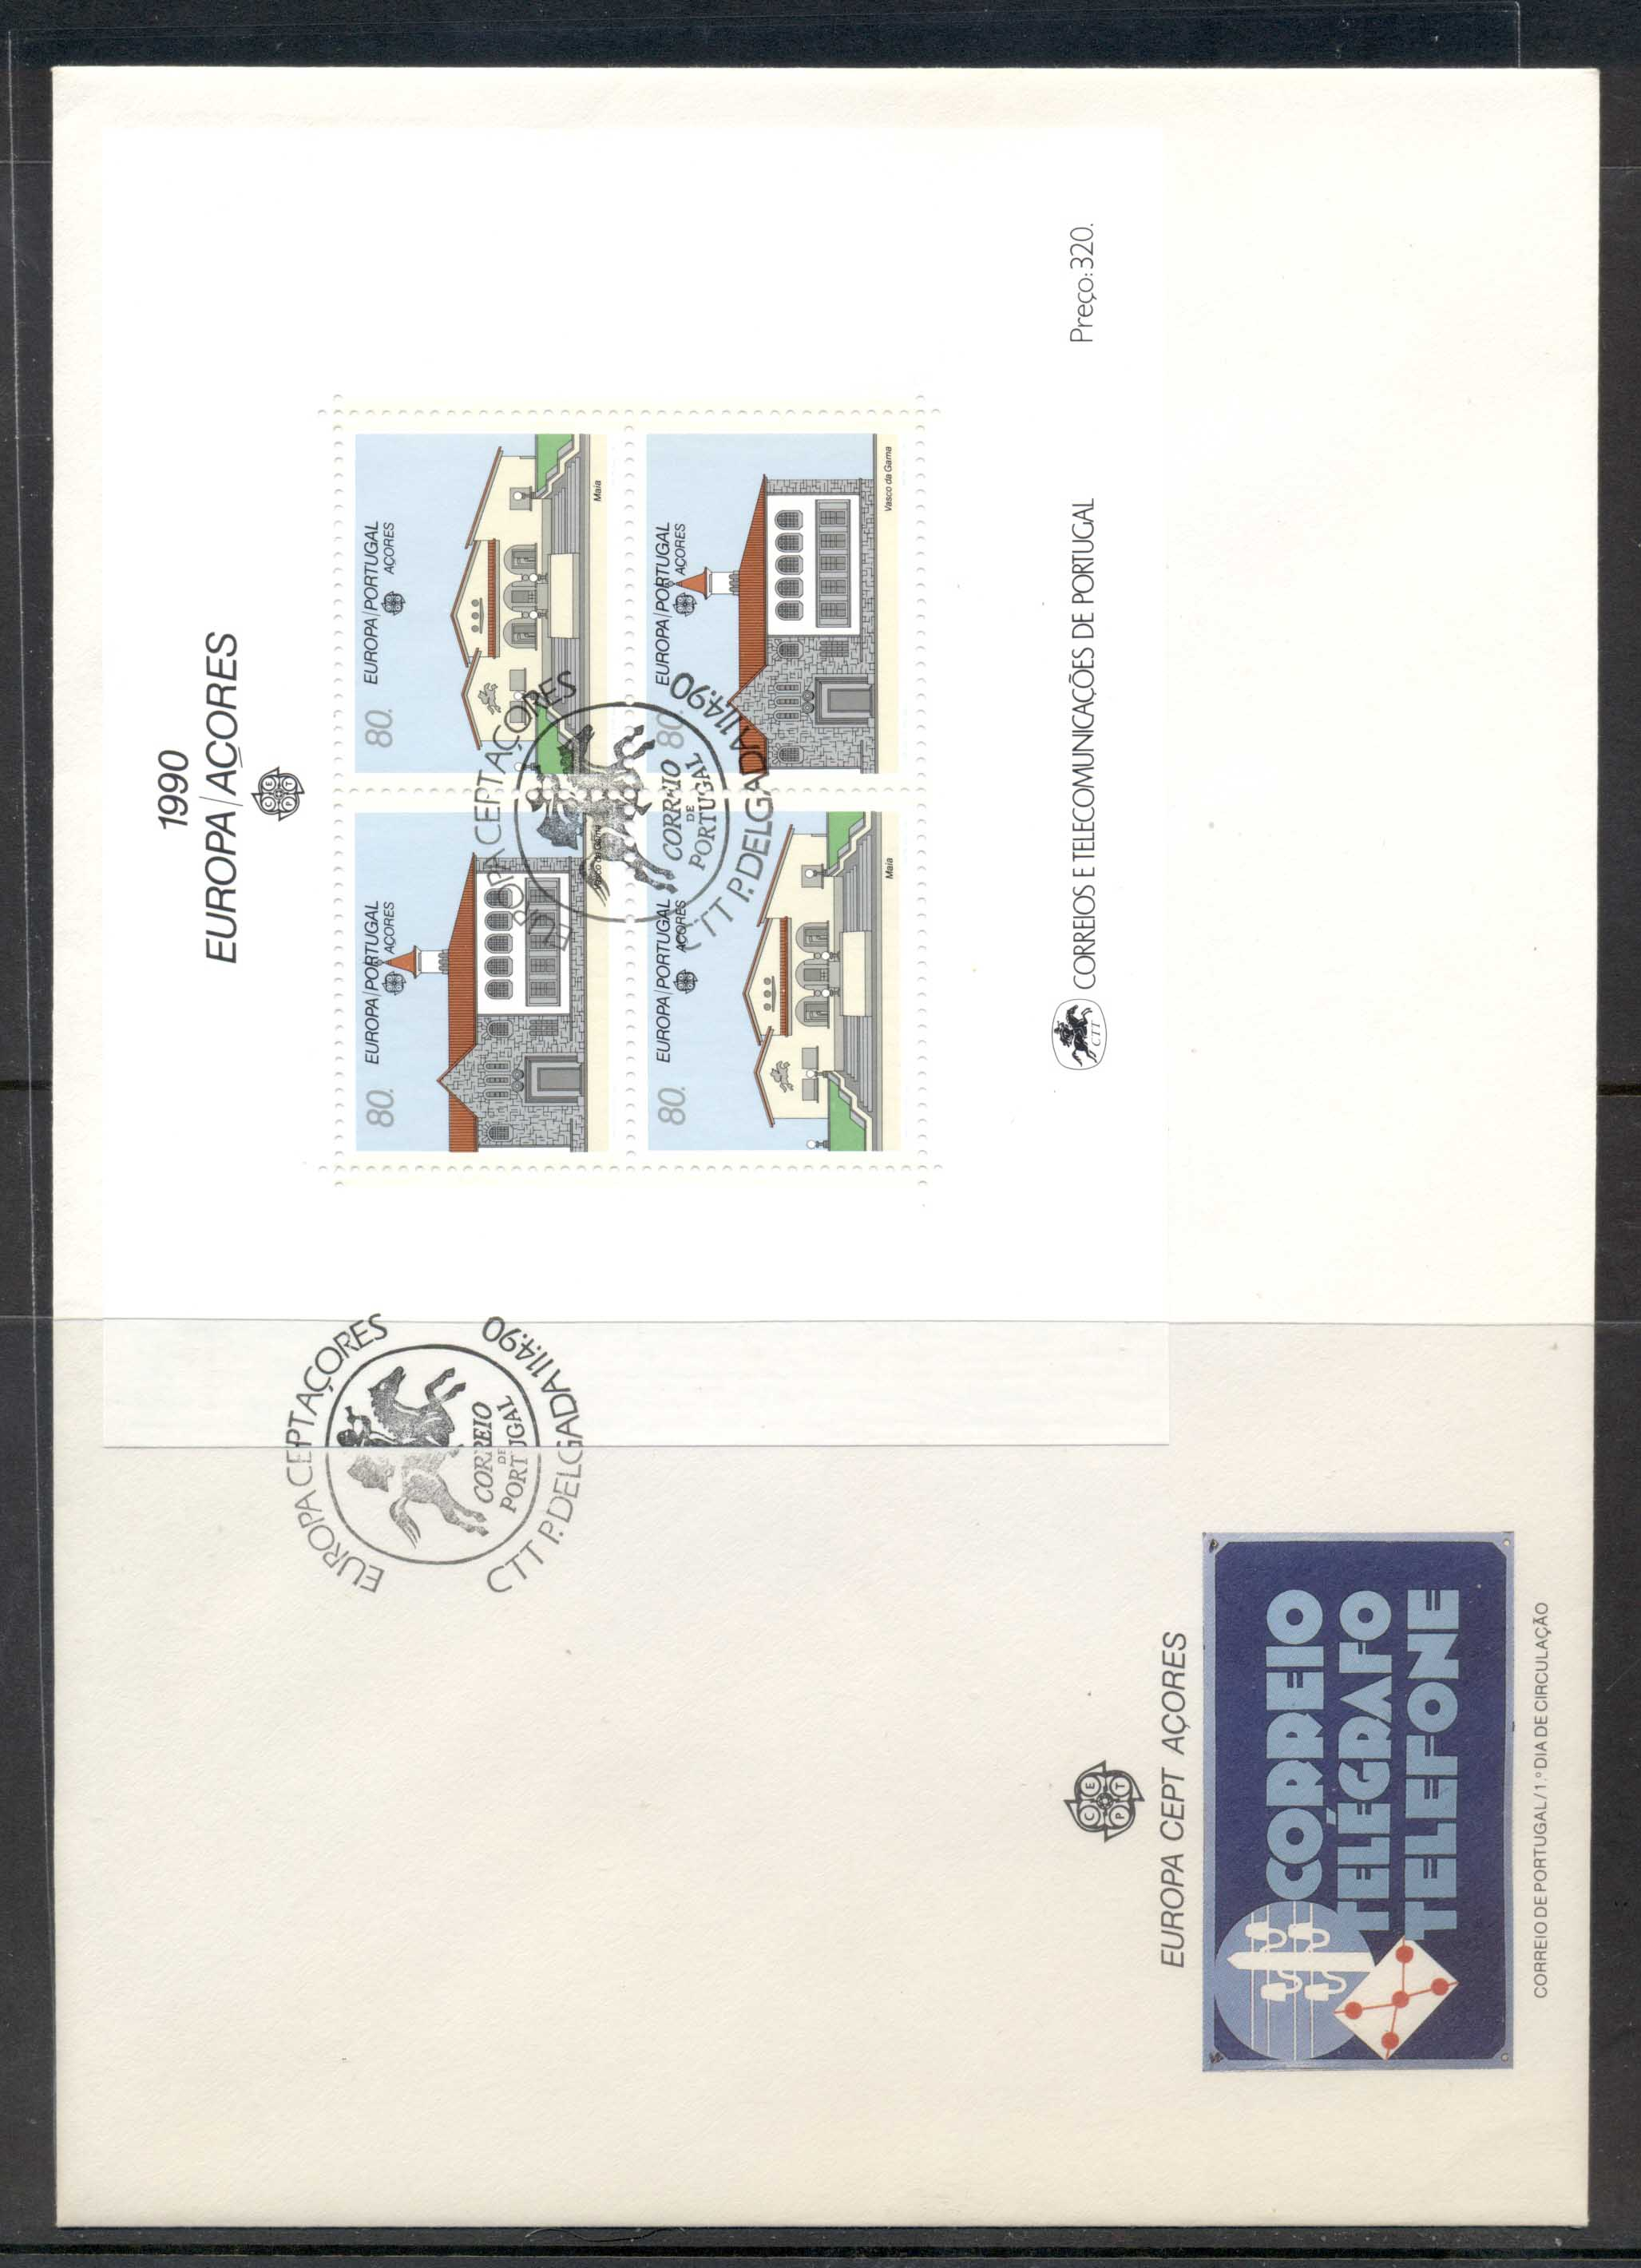 Azores 1990 Europa Post Offices XLMS FDC